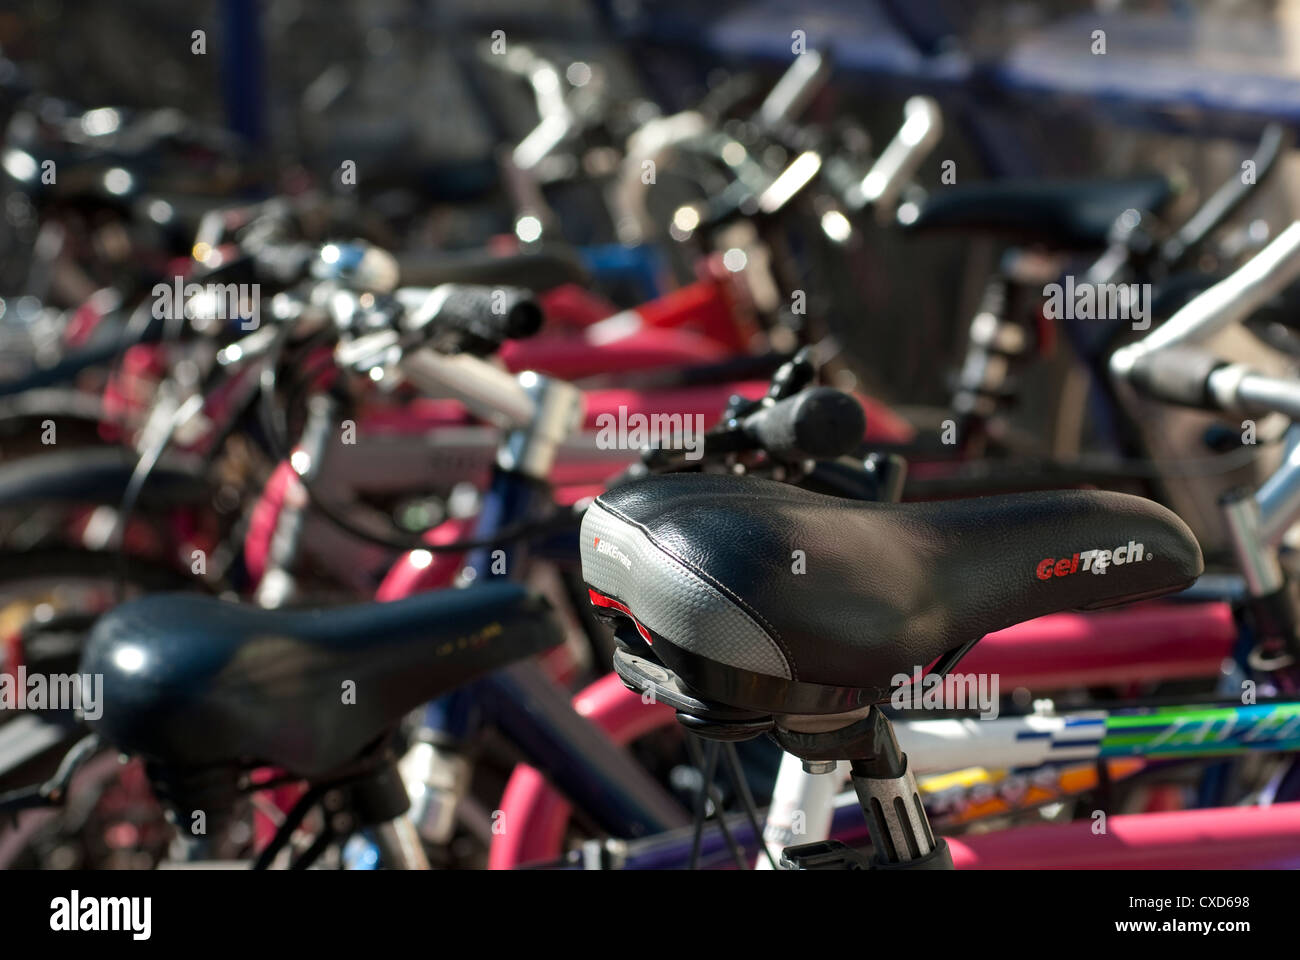 Bicycles parked securely undercover in a parking area outside a railway station in England. - Stock Image